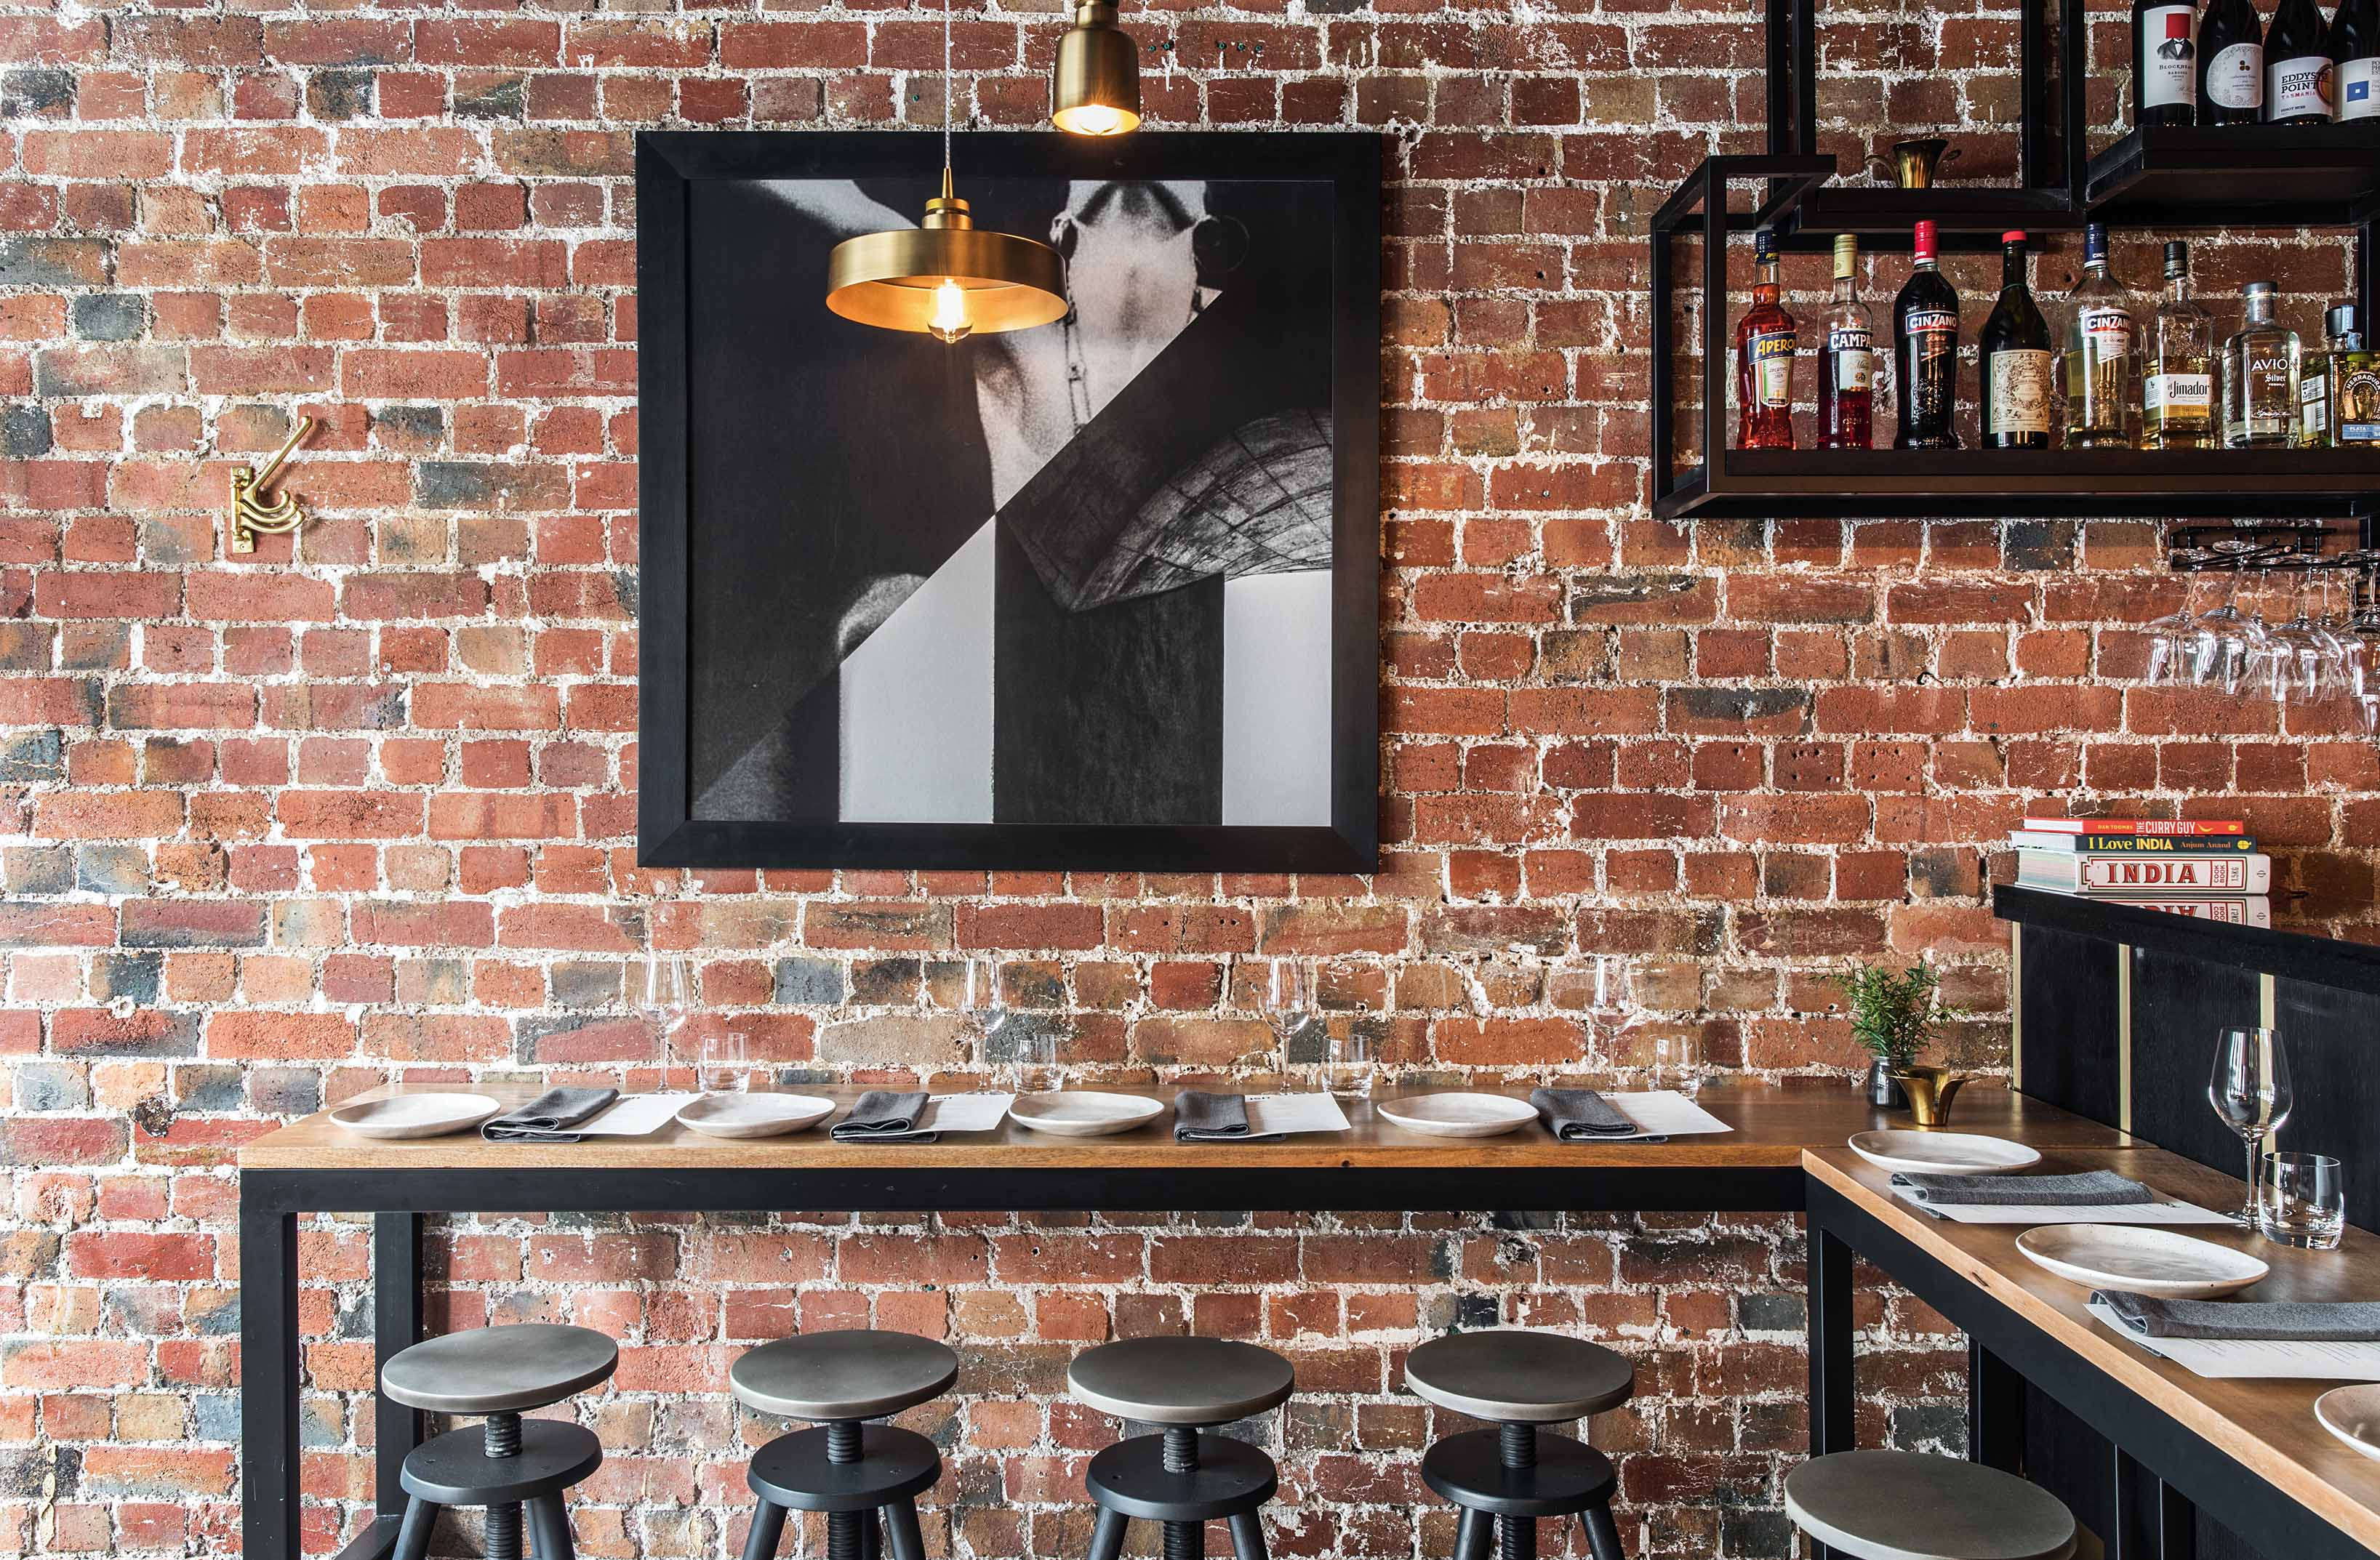 High hardwood timber tables line the exposed brick wall